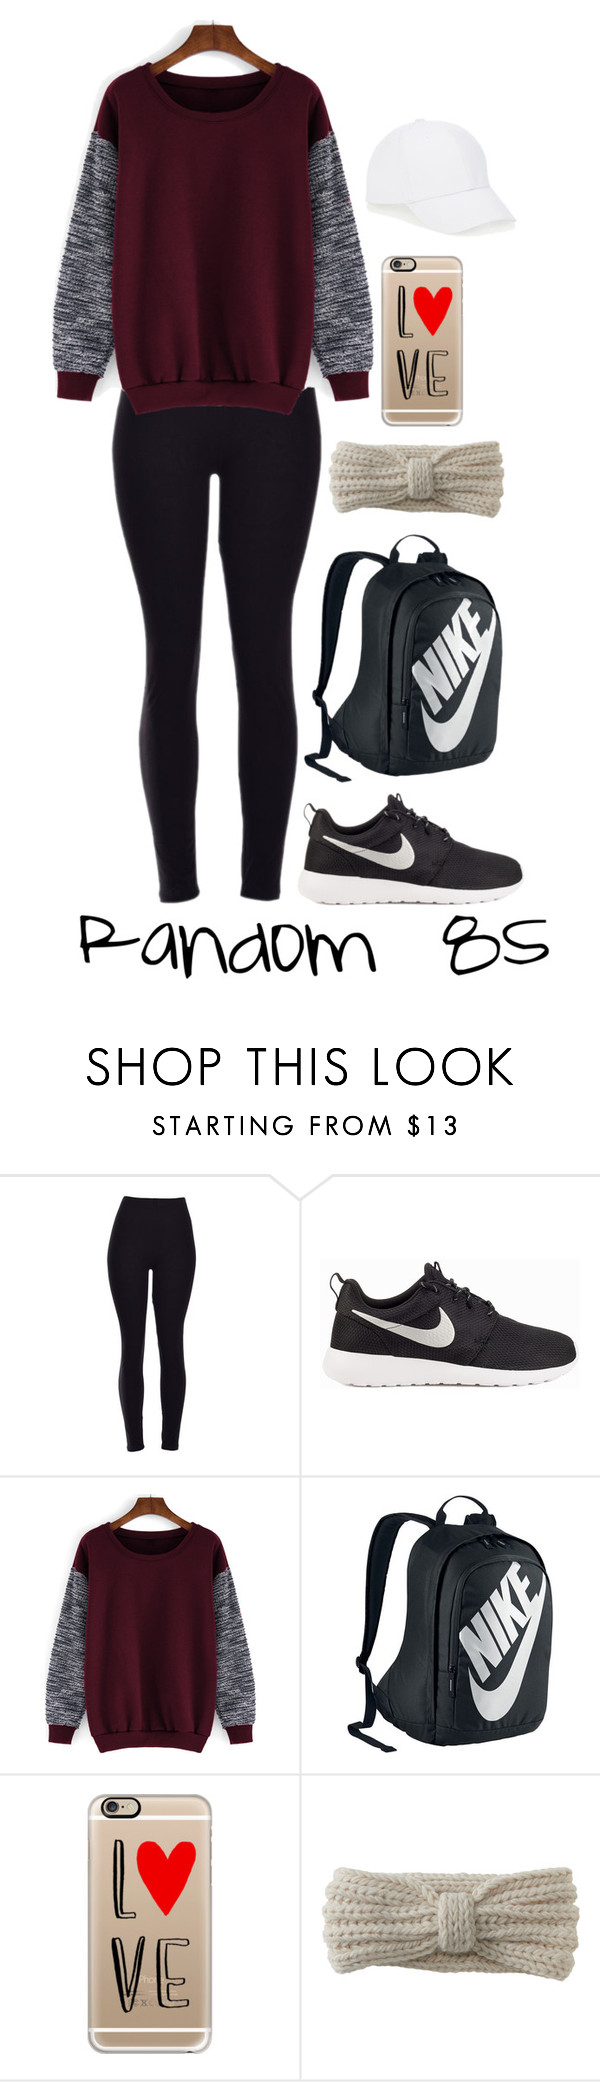 """""""Random 85"""" by megan-walz21 ❤ liked on Polyvore featuring NIKE, Casetify, Aéropostale and Talbots"""